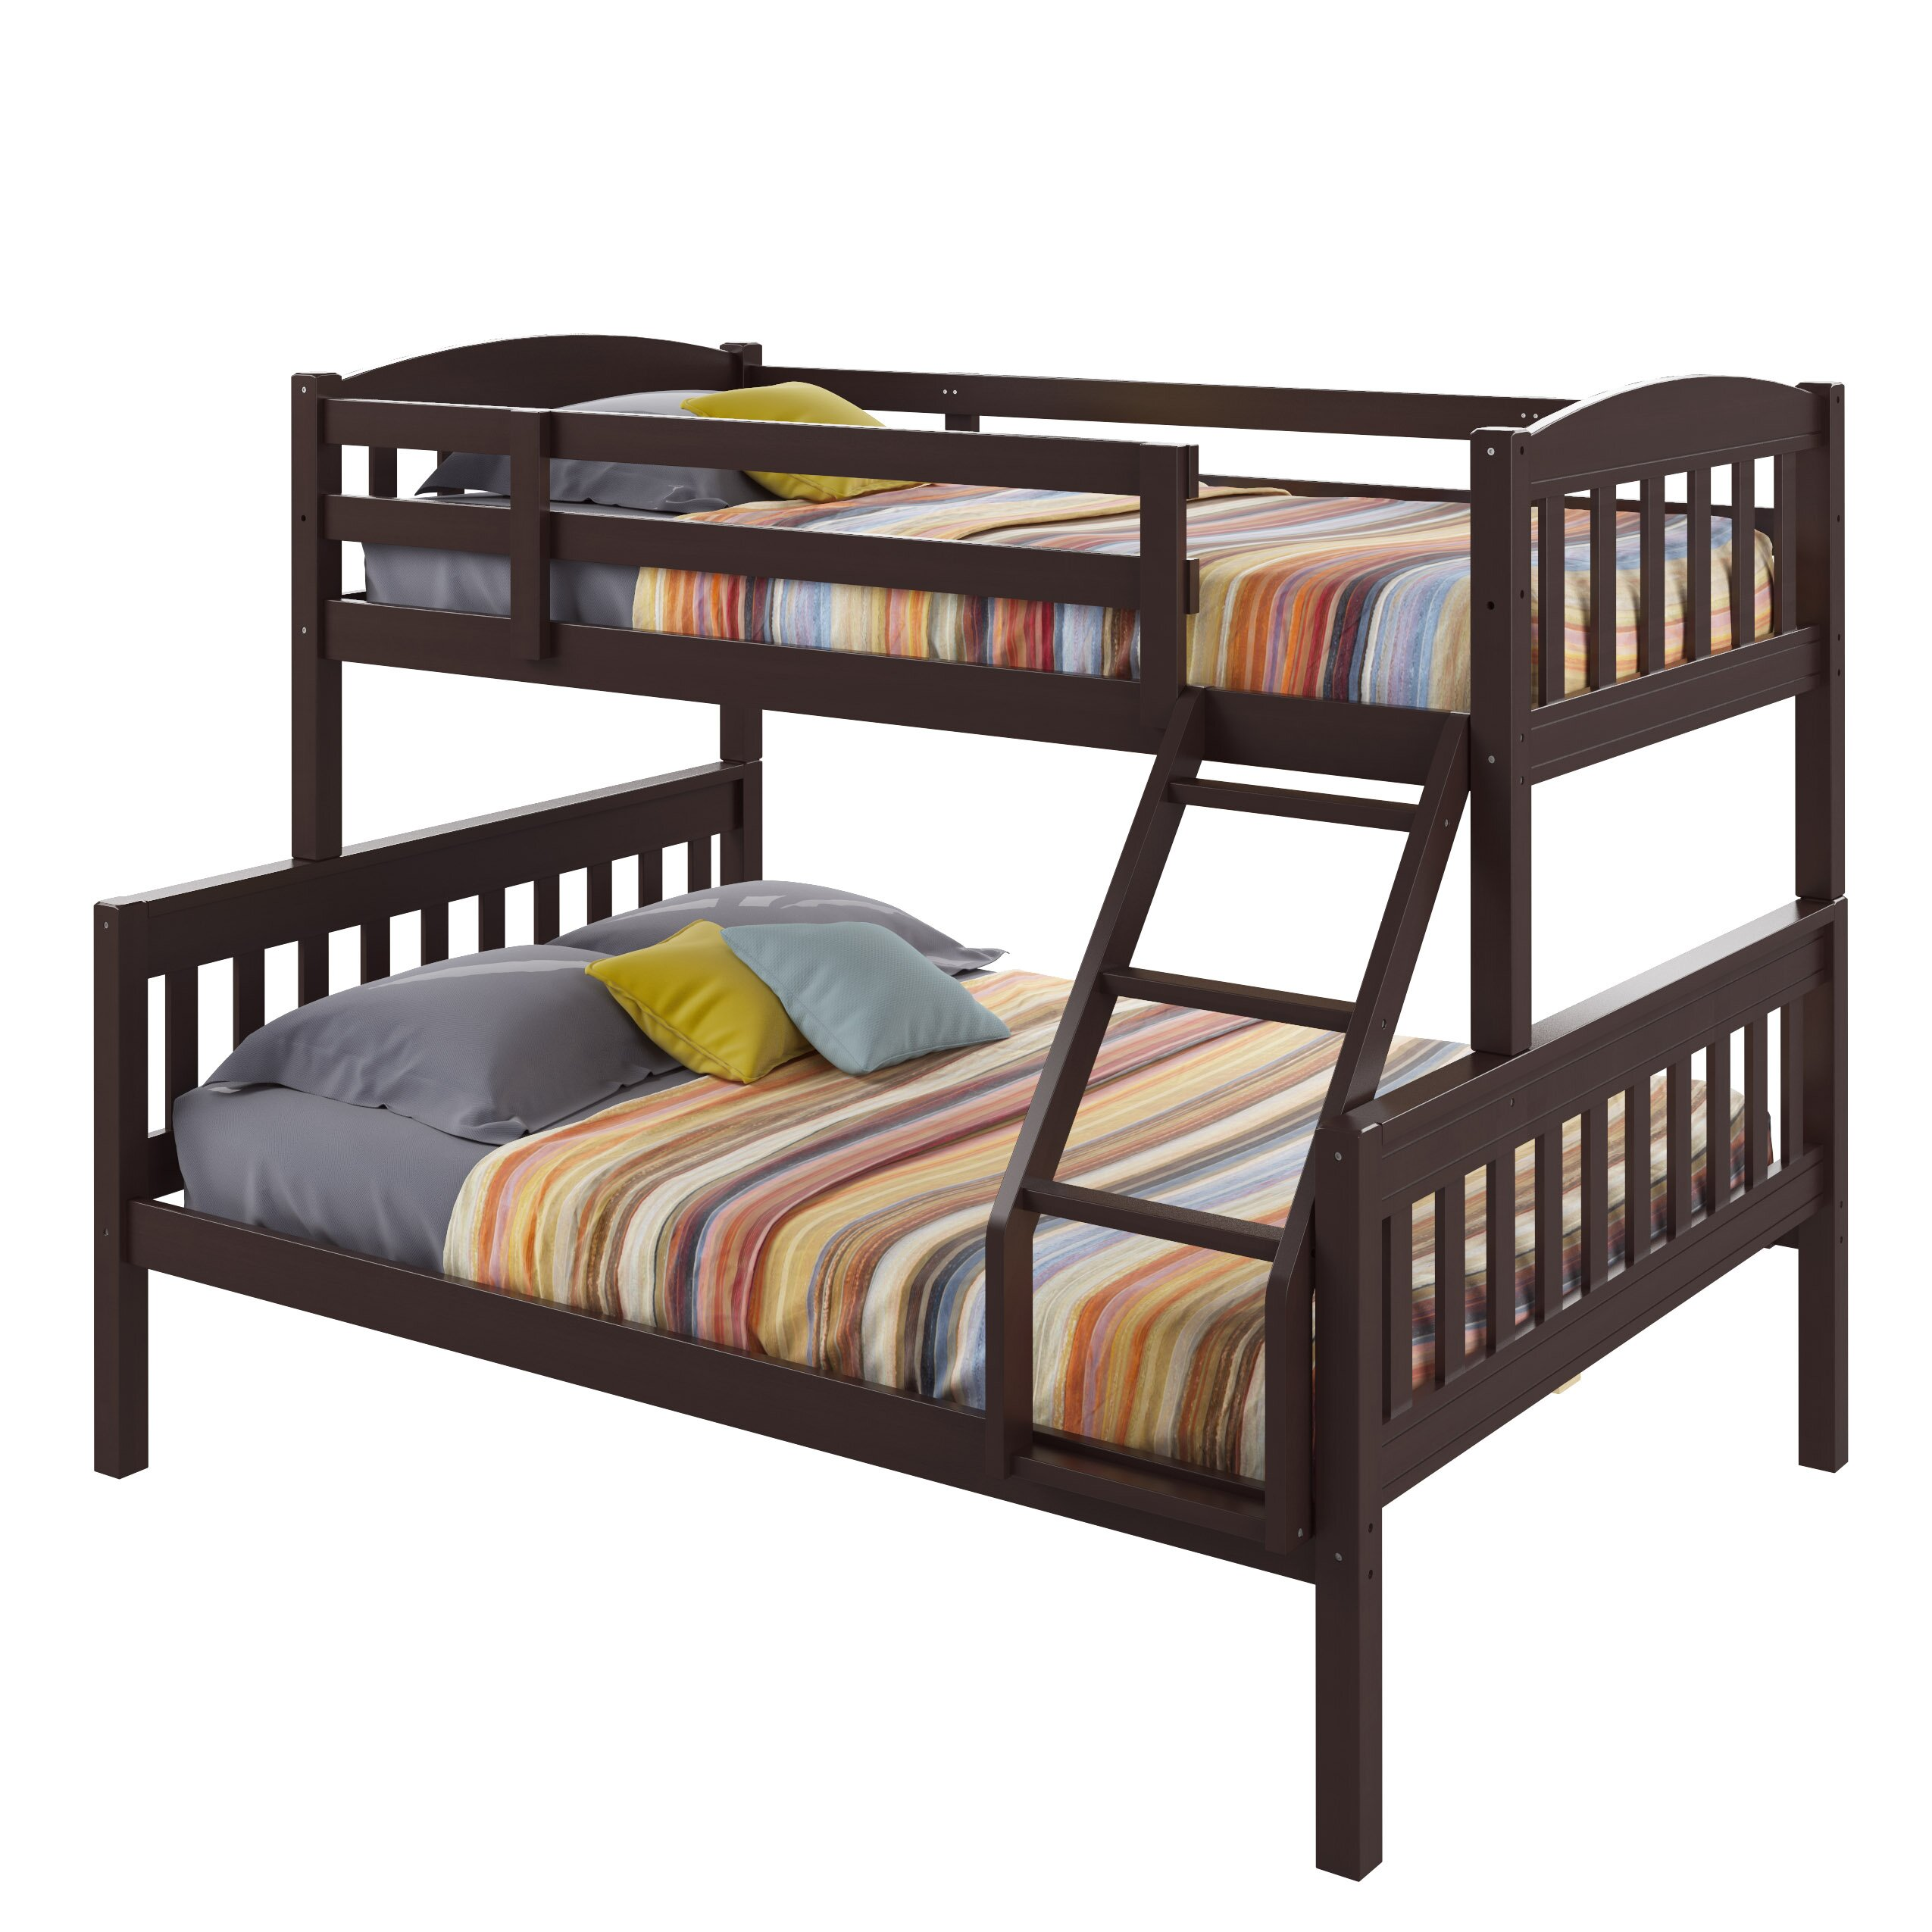 Corliving apollo twin over full bunk bed reviews wayfair for Full bed with mattress included